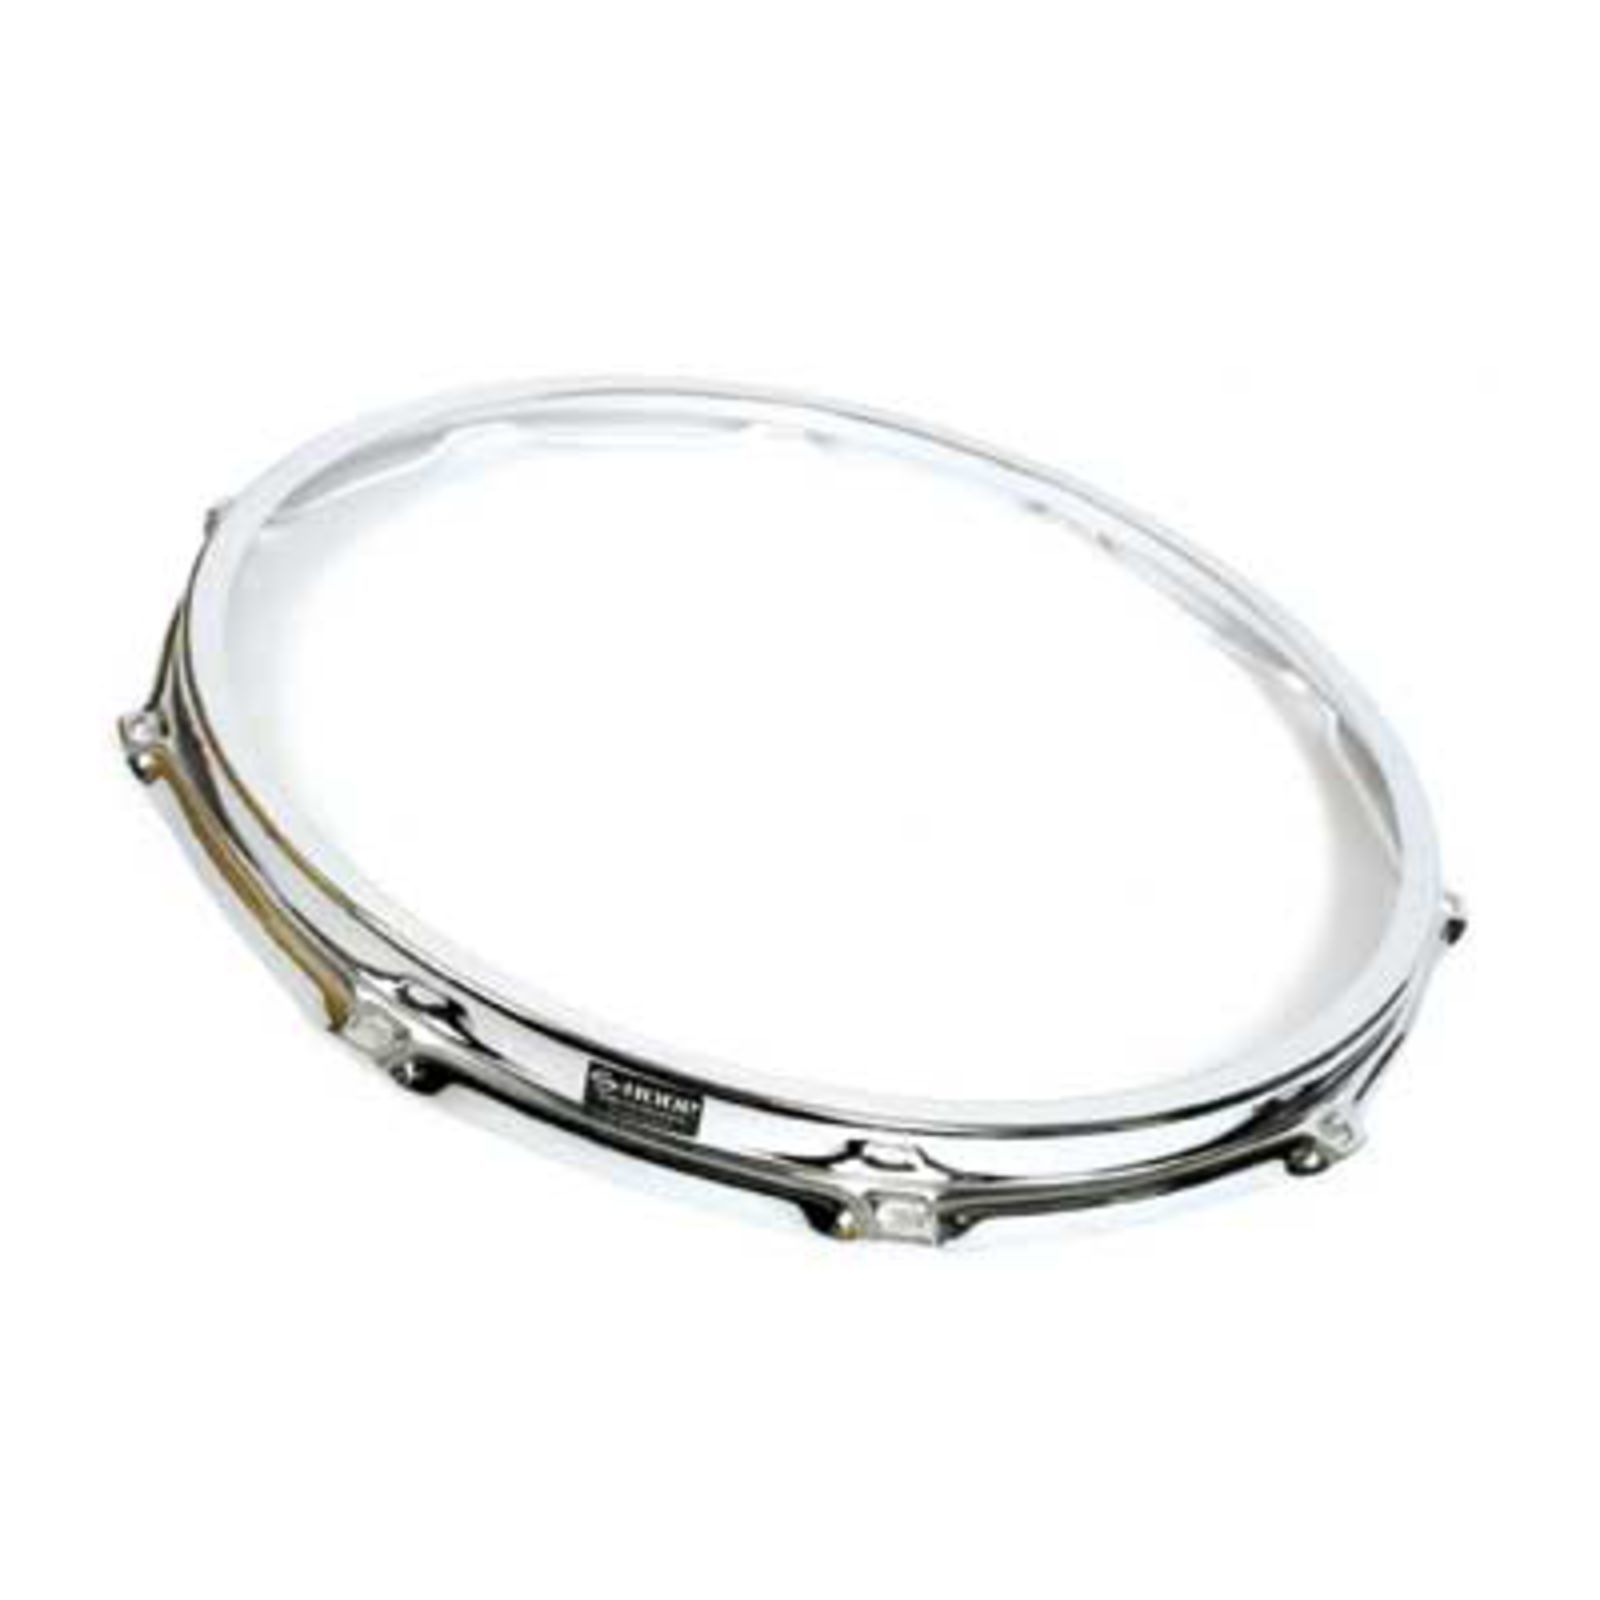 "S-Hoops Spannreifen SH1410B, 14"", 10-Hole, Snare Bottom Product Image"